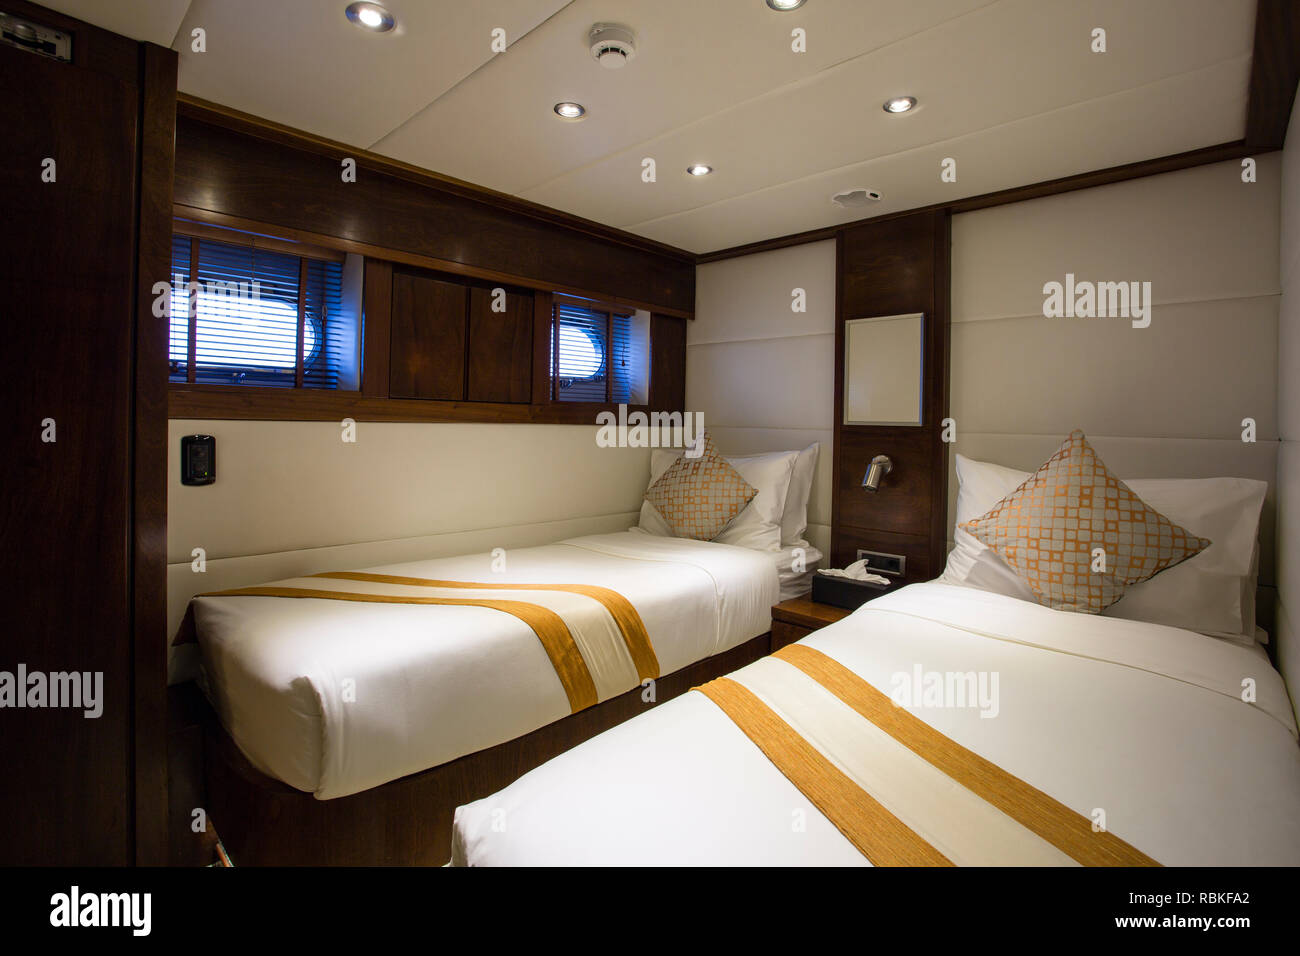 Boat Interior Bedroom High Resolution Stock Photography And Images Alamy